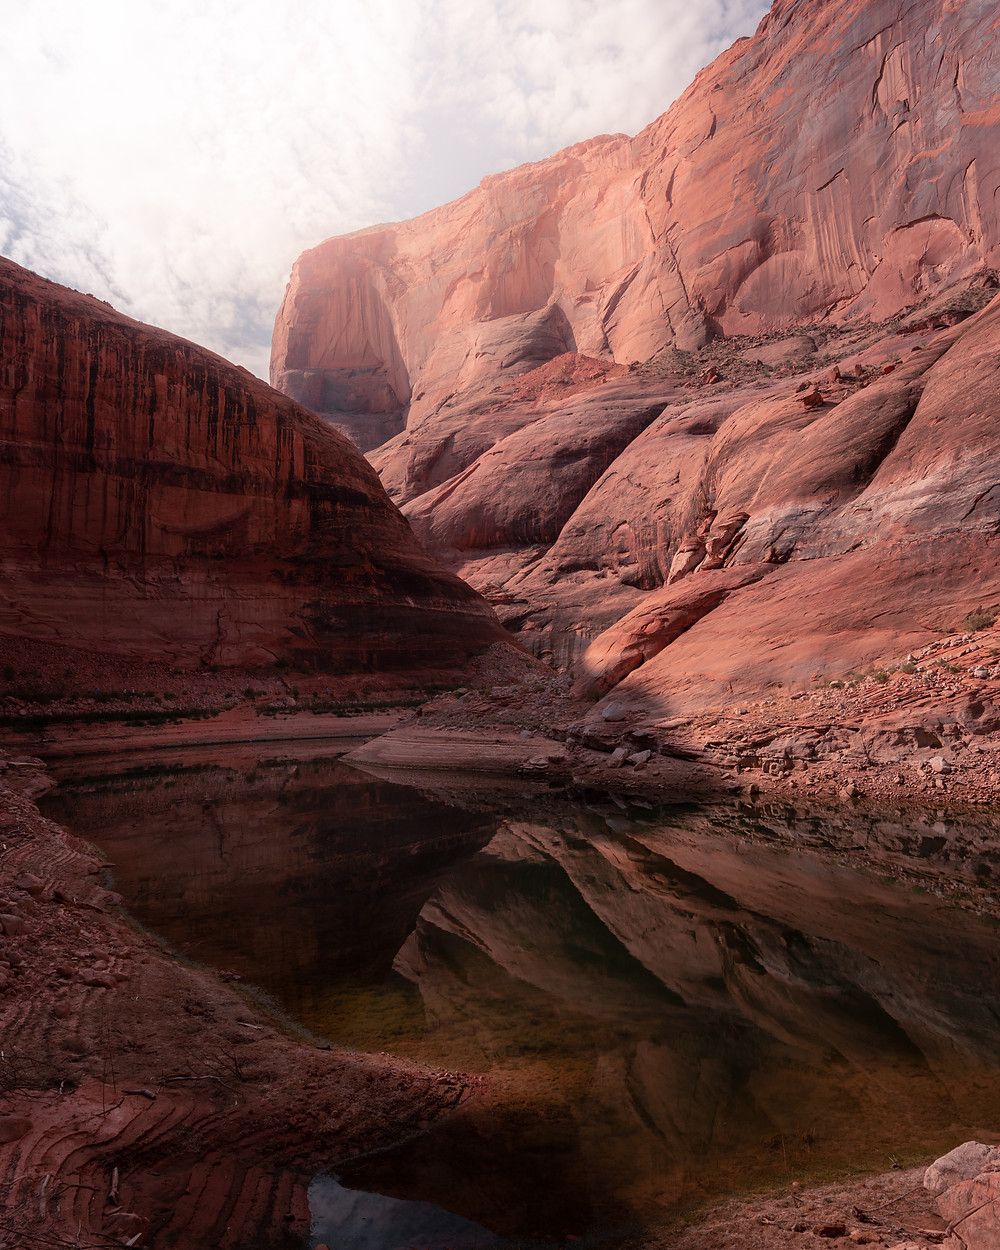 reflections of stone canyons in the lake